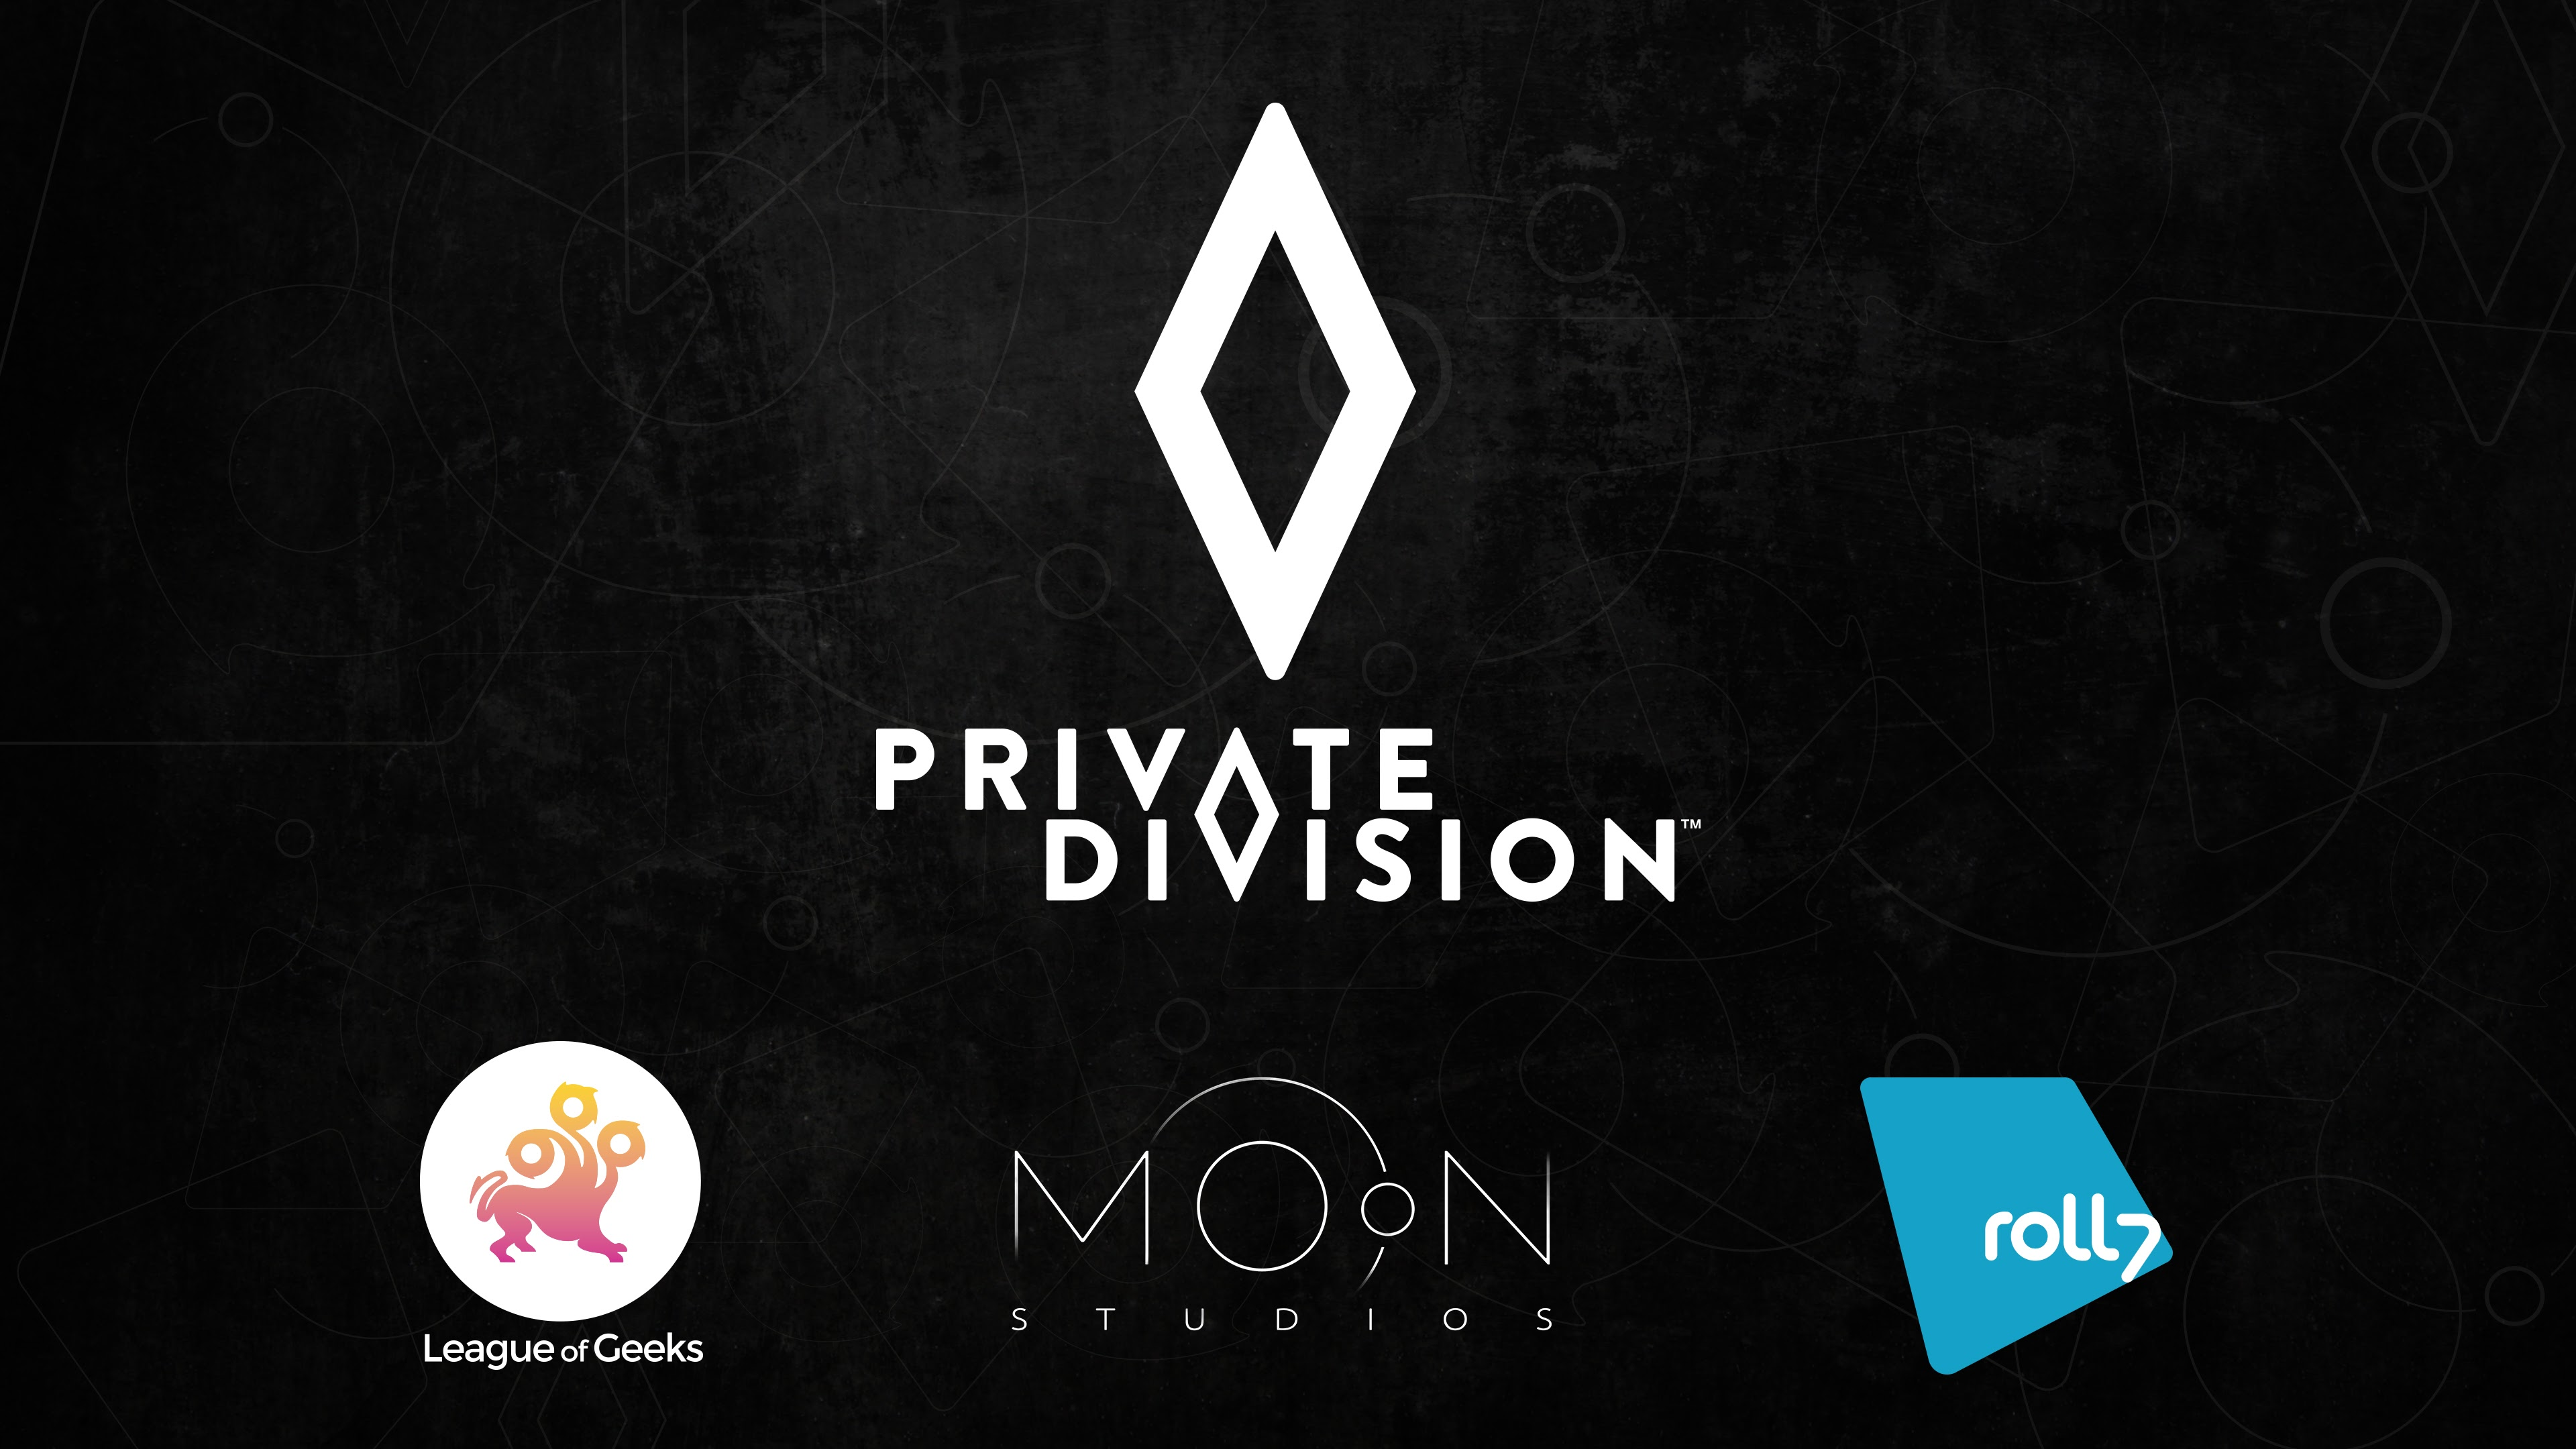 Private Division Signs Deal With Moon Studios, League Of Geeks & Roll7